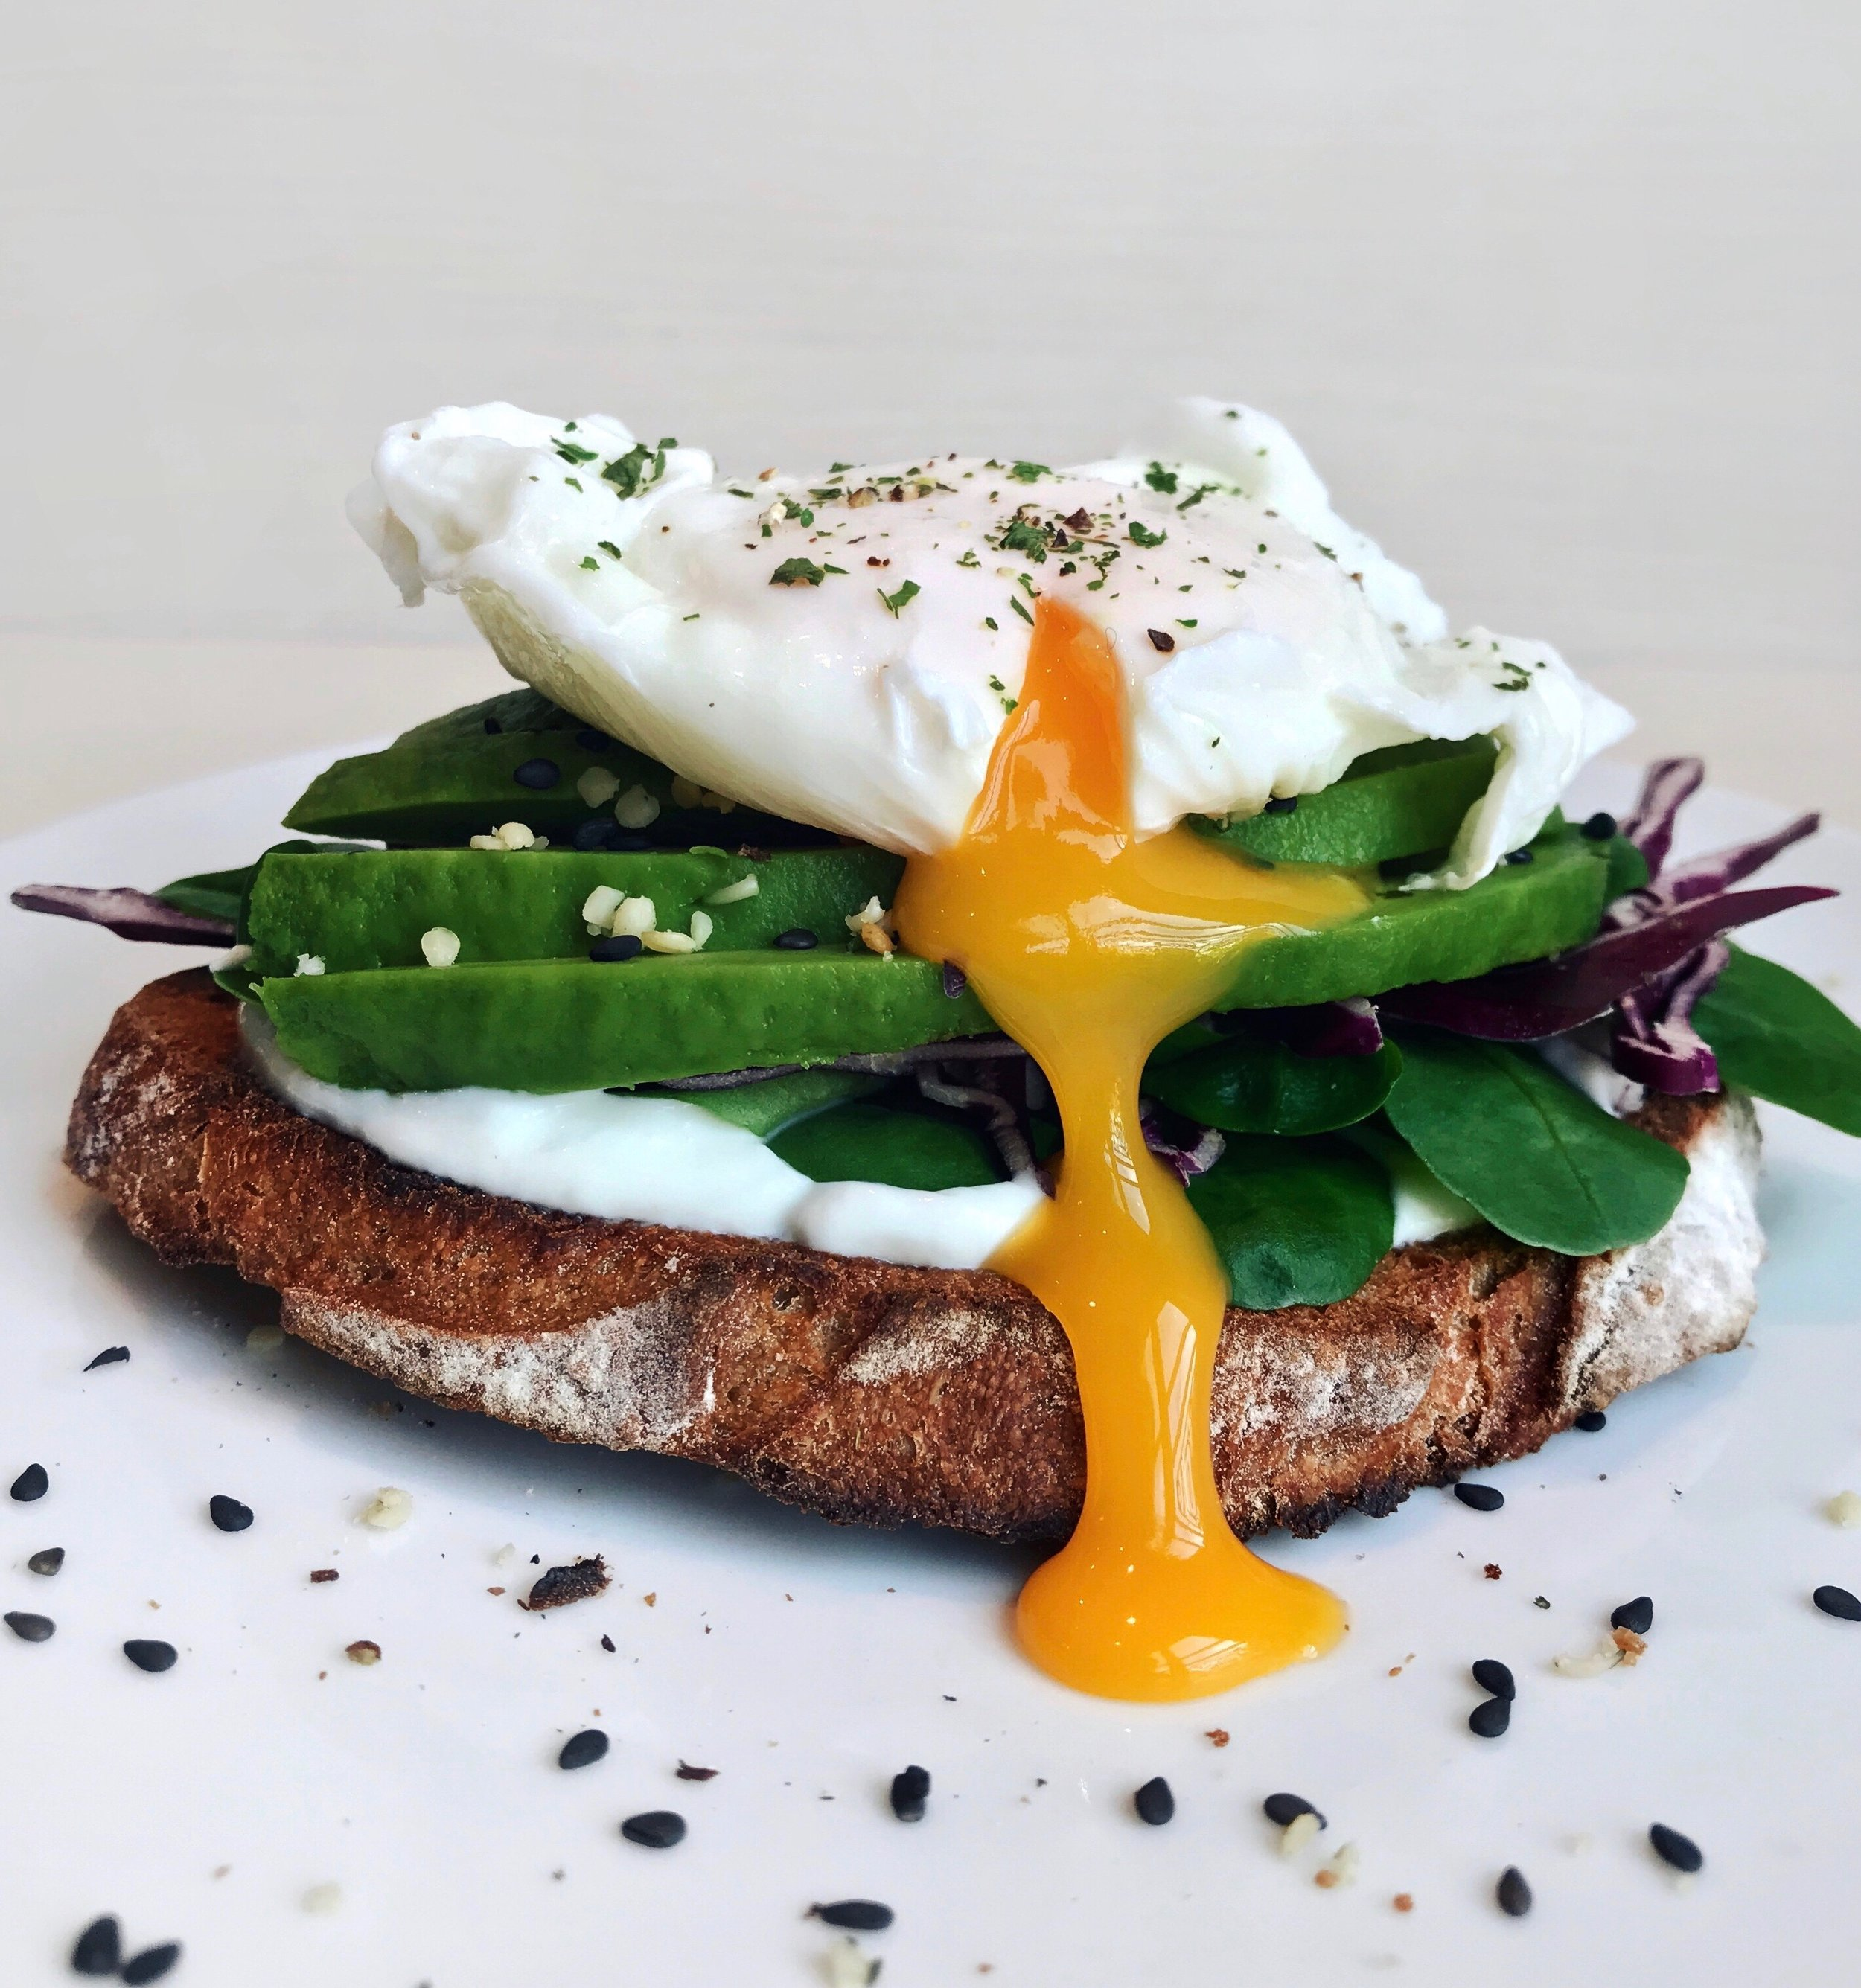 Avocado & Poached Egg